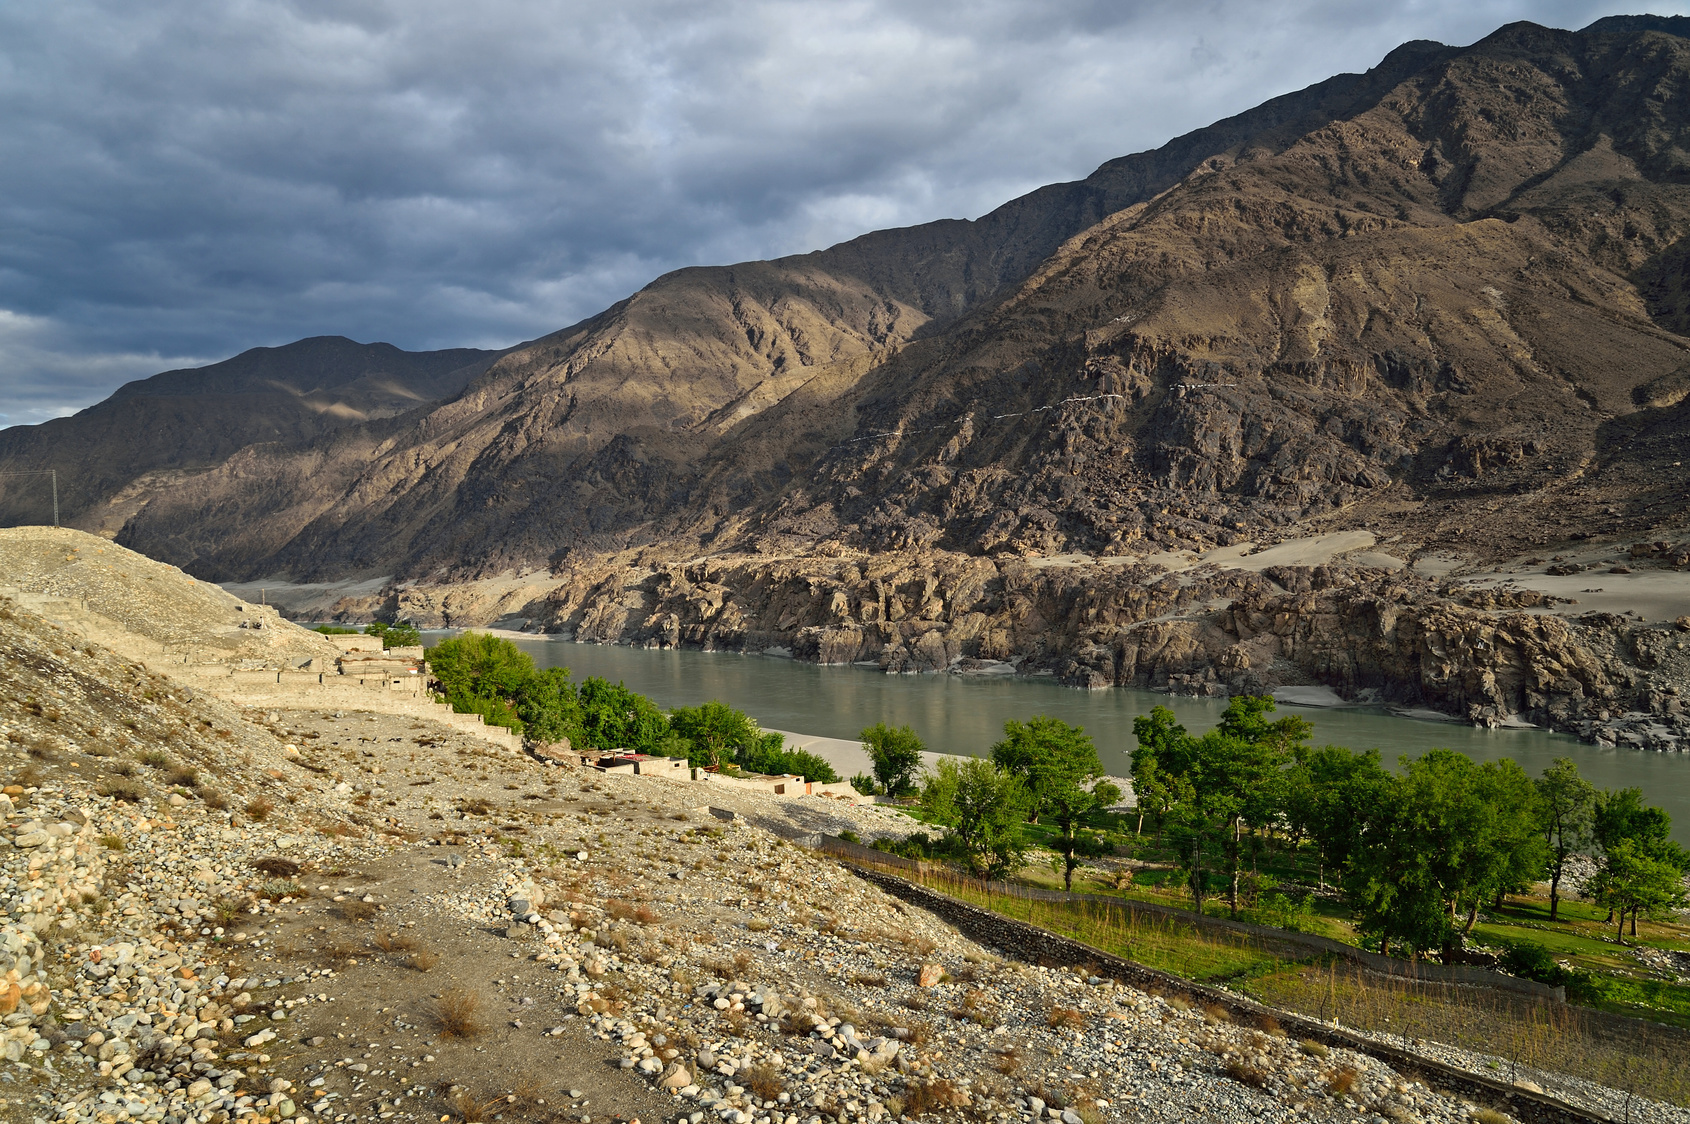 The raging Indus River in Northern Pakistan.